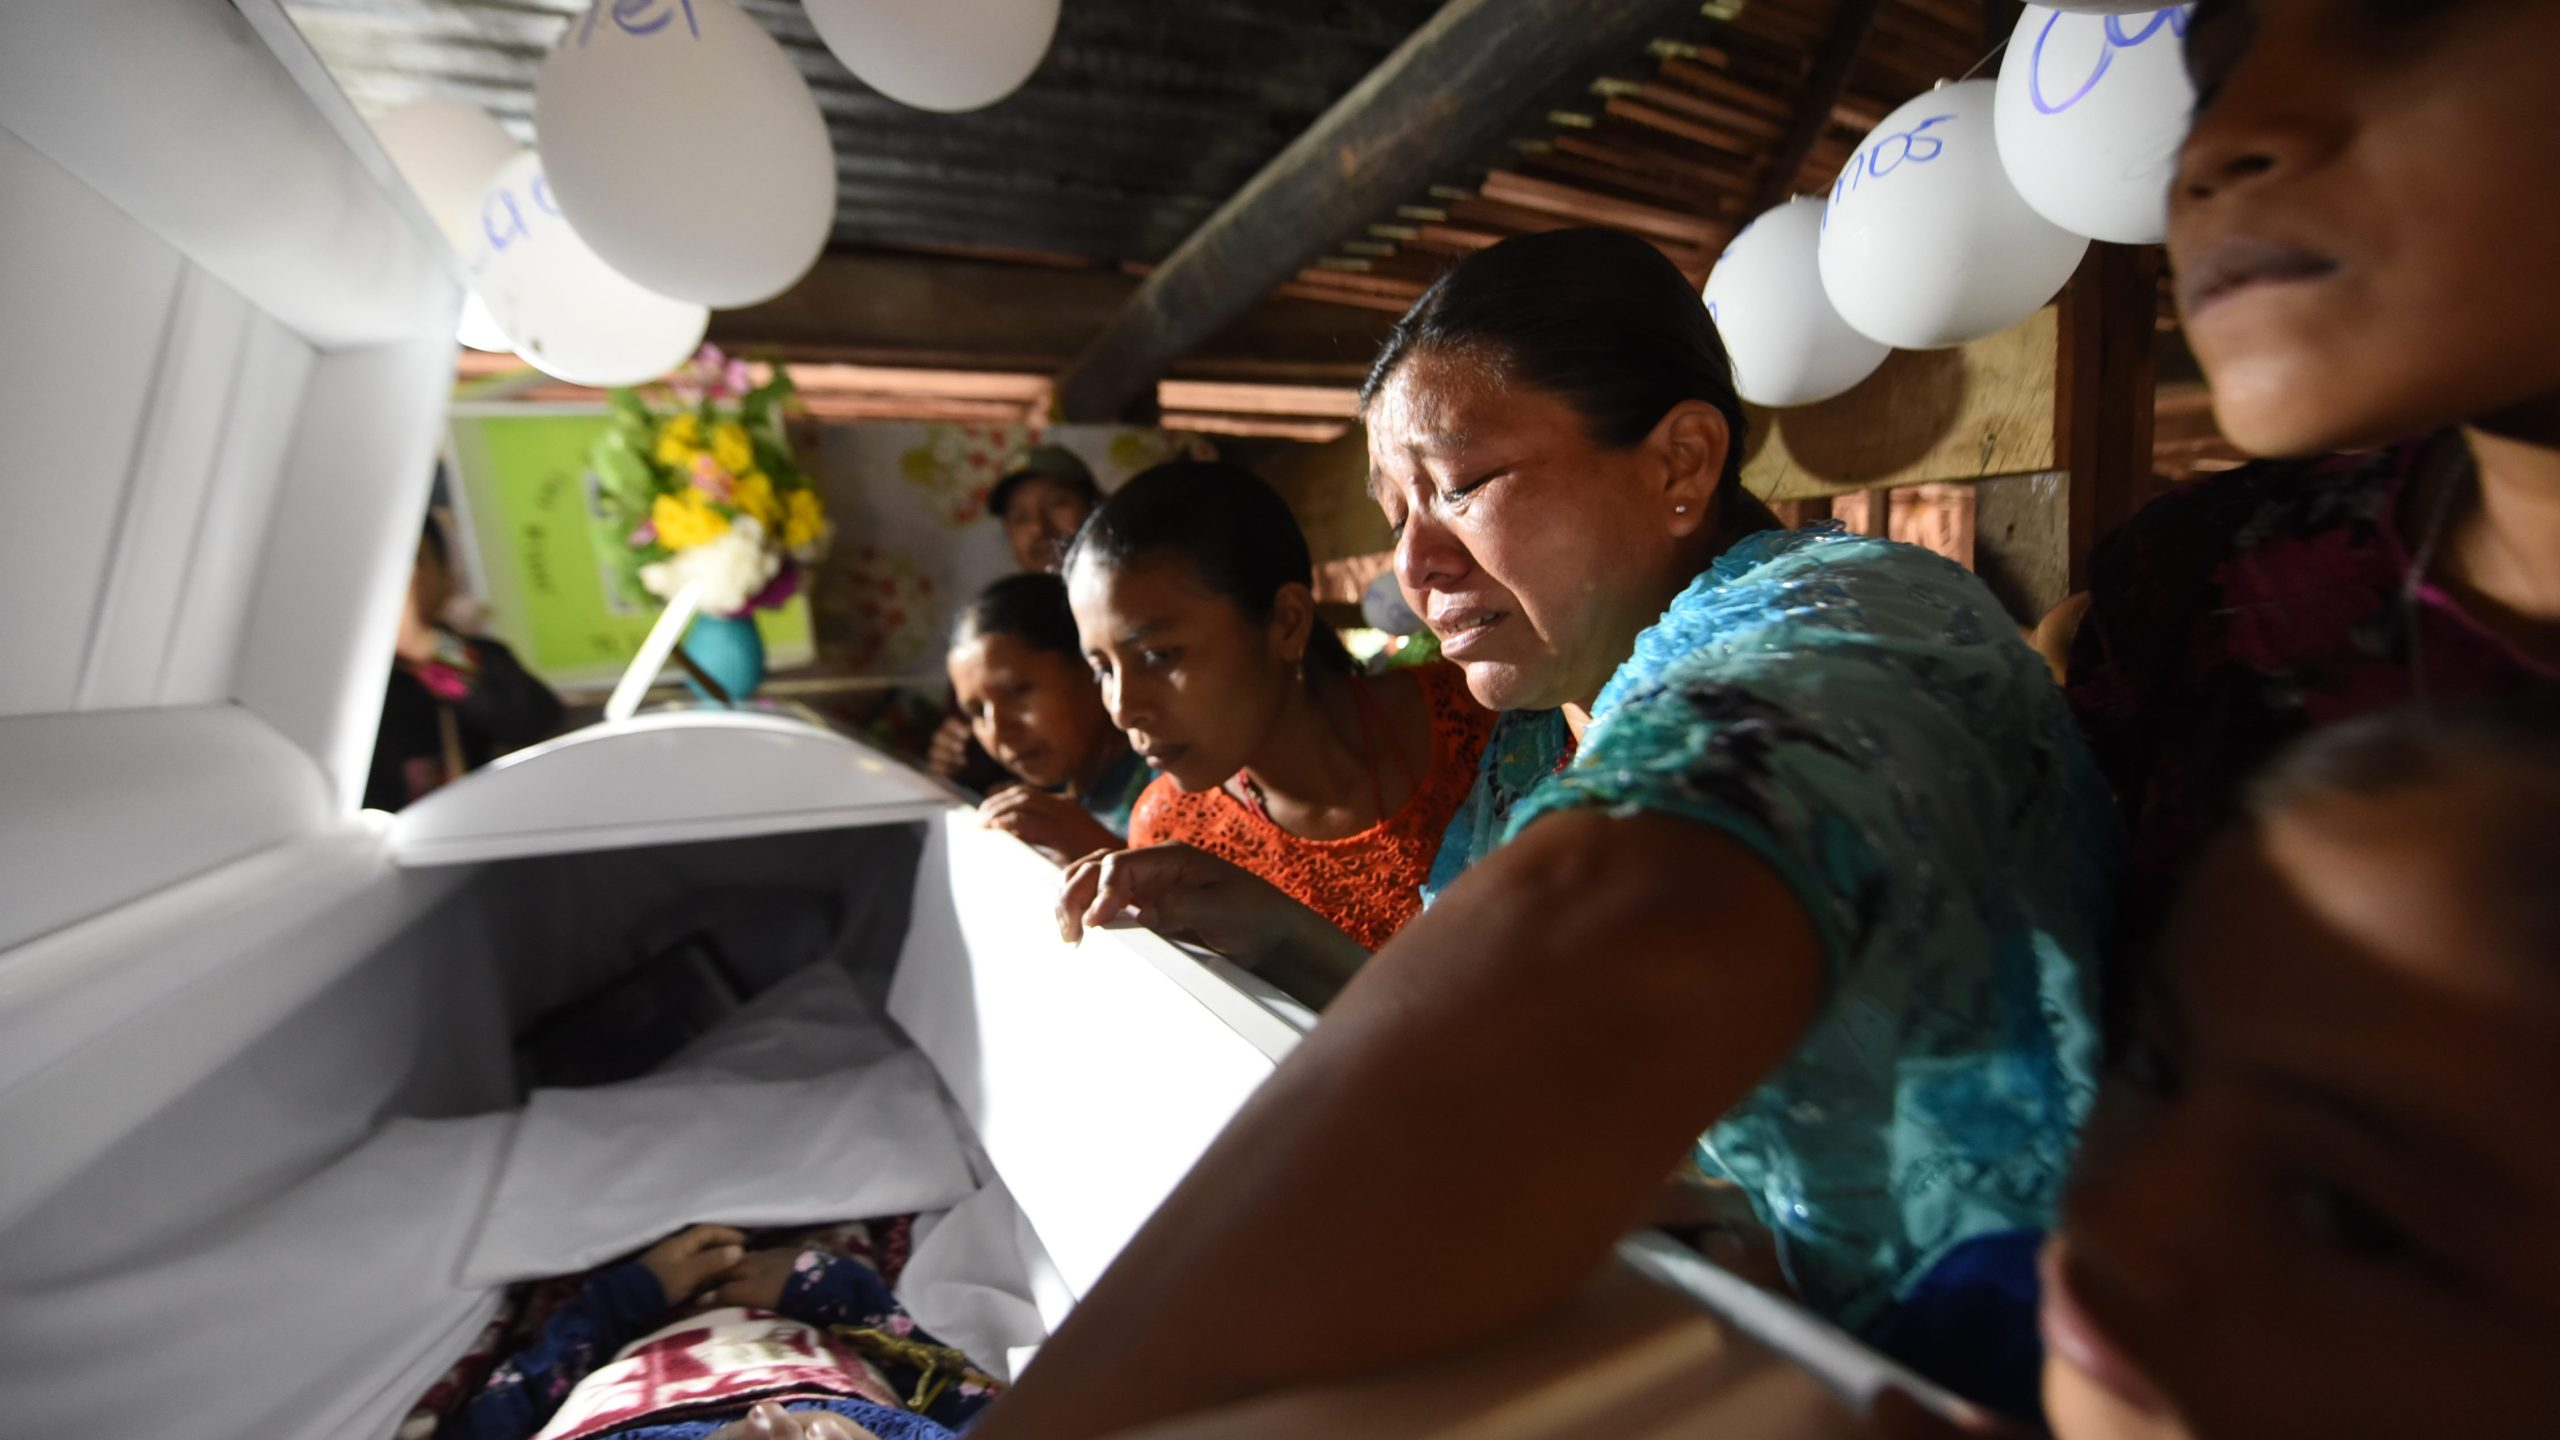 Relatives cry over the coffin of 7-year old Jakelin Caal during a wake in her home village 320 kilometers north of Guatemala City on Dec. 24, 2018. (Credit: JOHAN ORDONEZ/AFP/Getty Images)